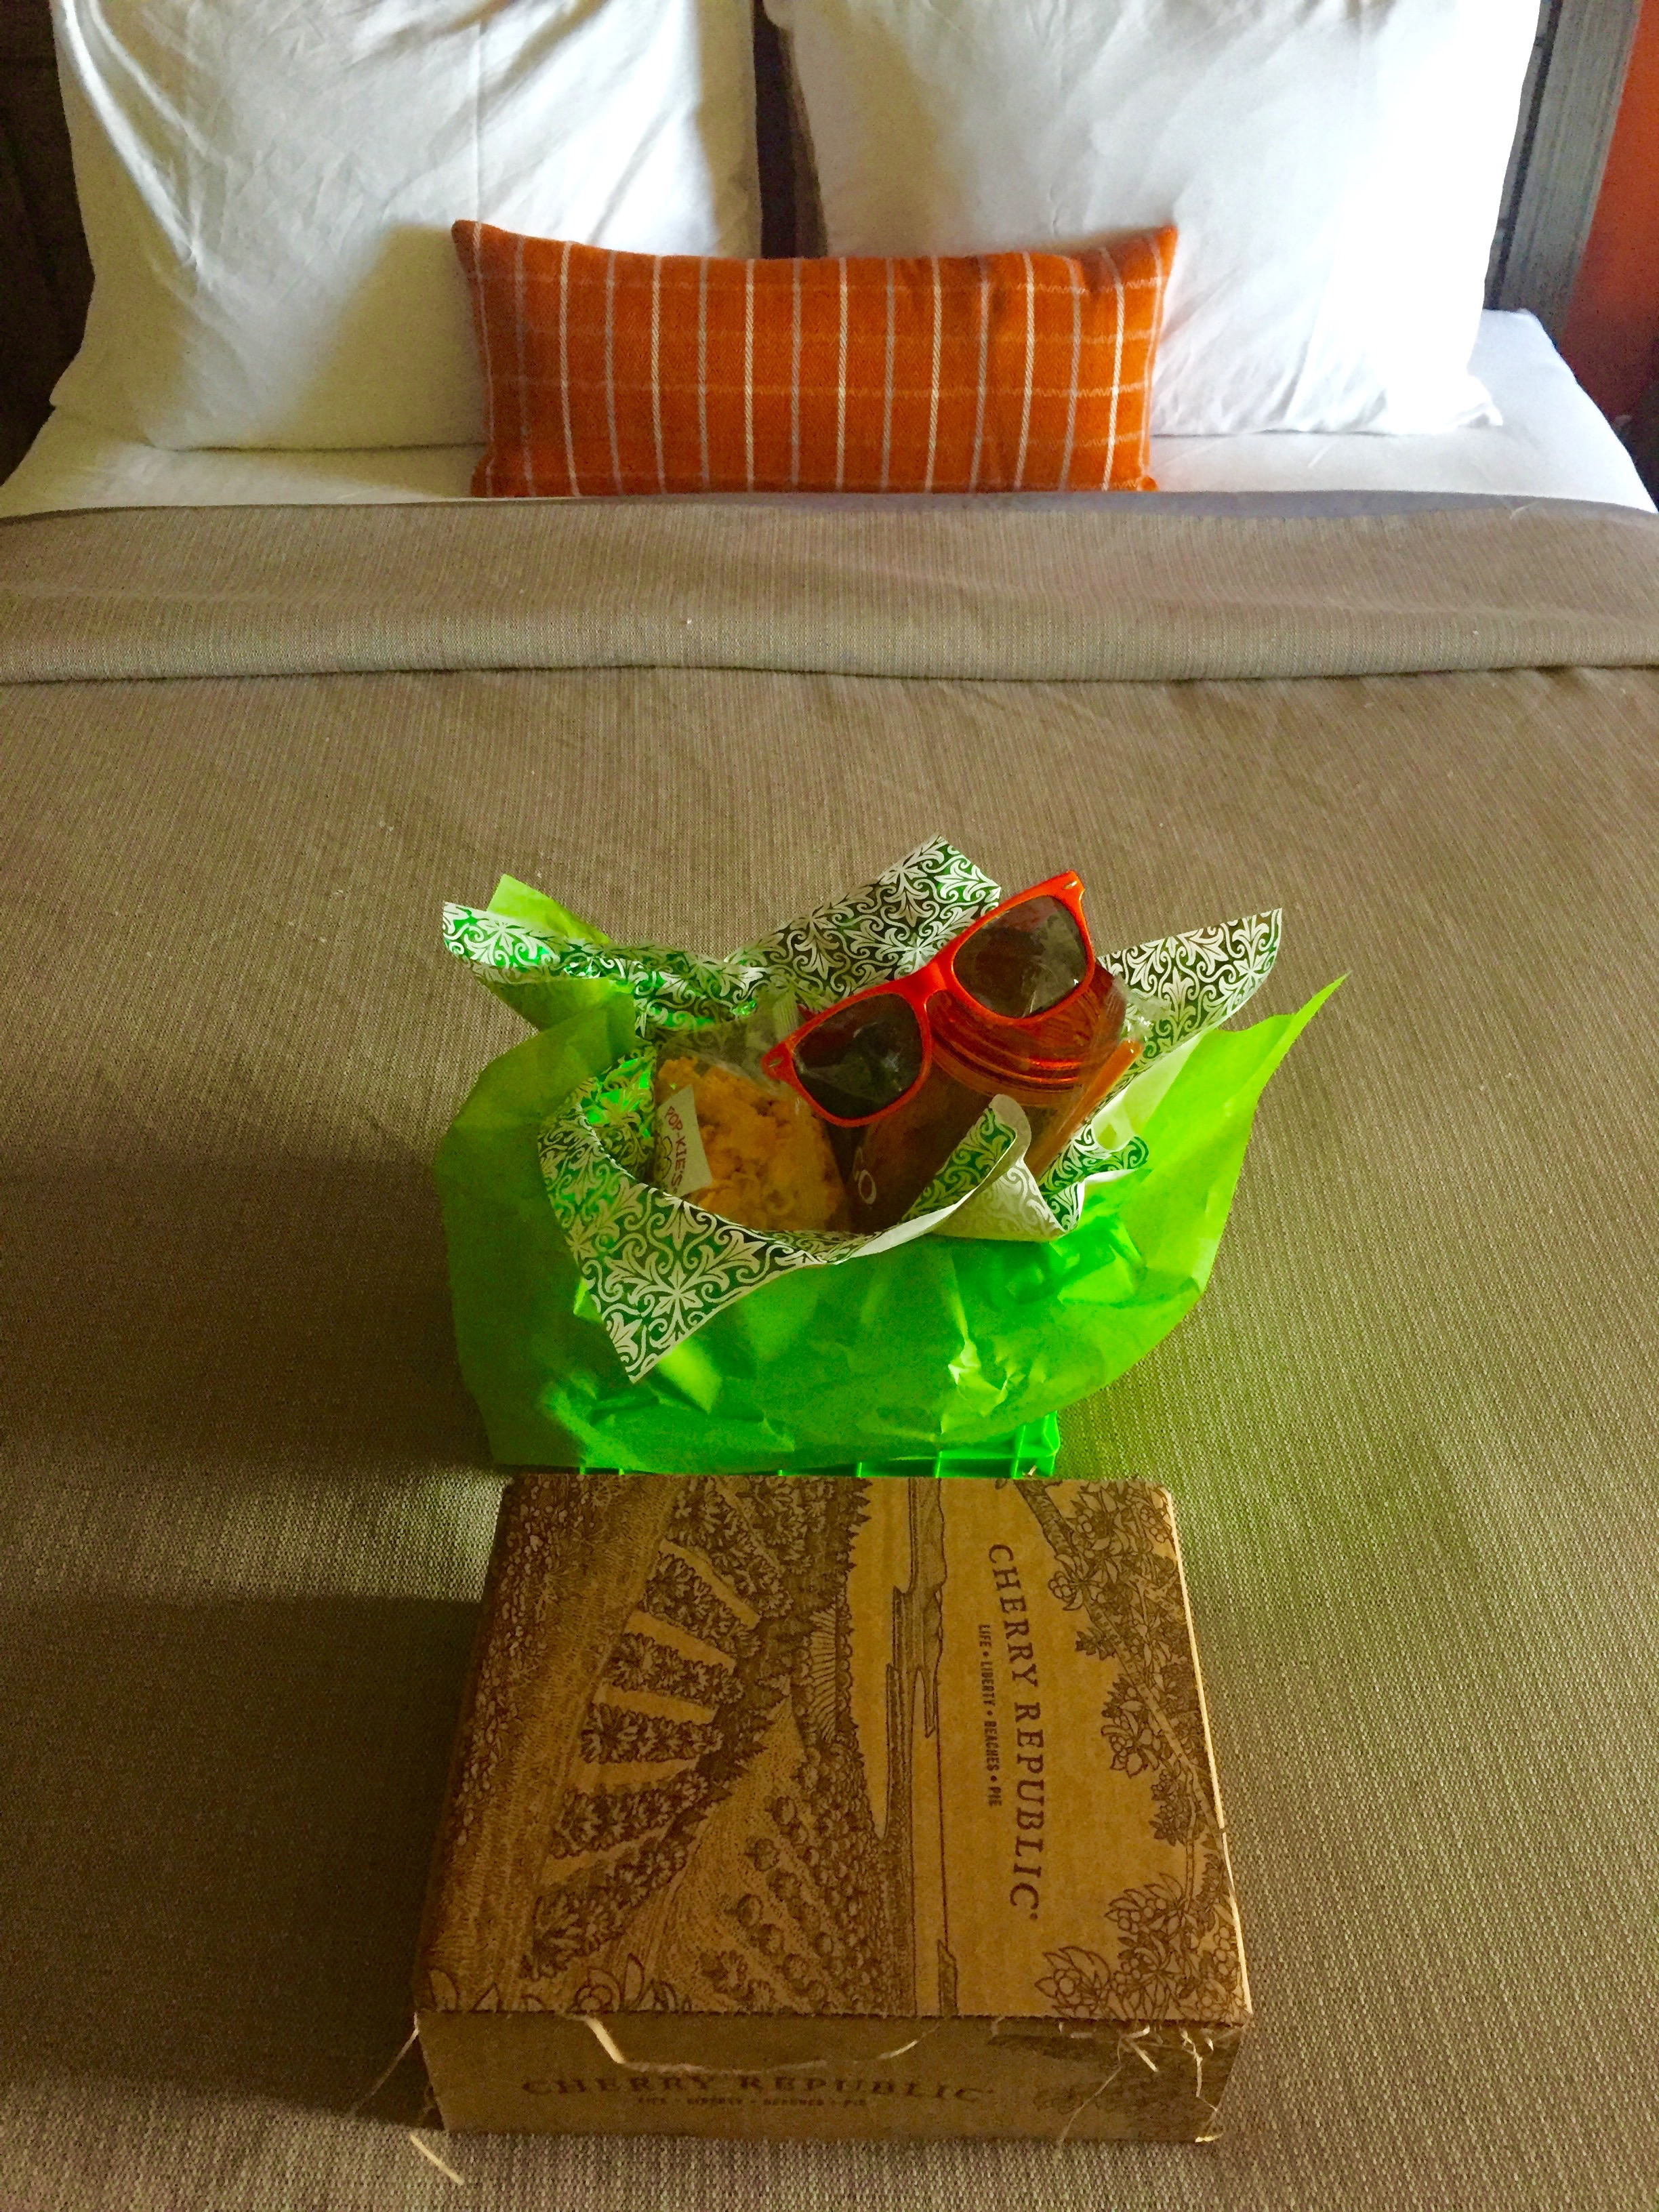 Participants received a gift package featuring local products as they entered their hotel rooms